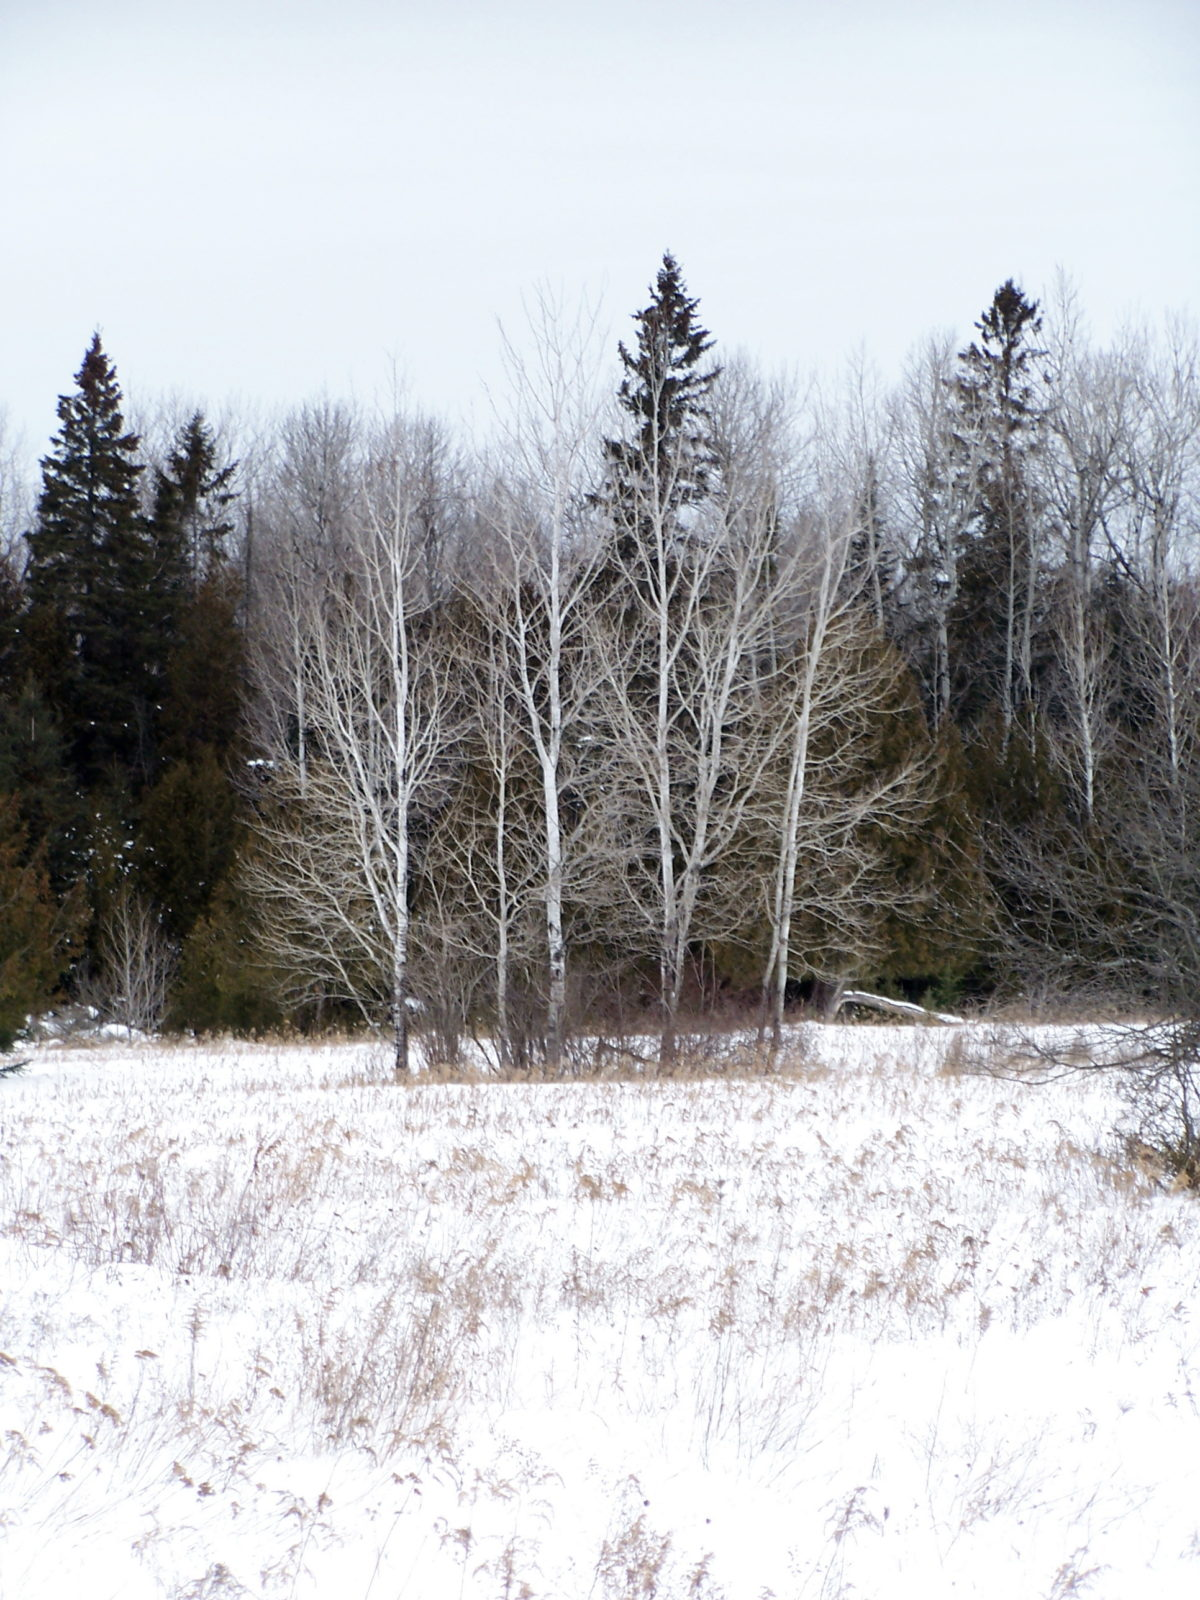 A copse of birch trees stands in a snowy, old field, with darger conifers behend.